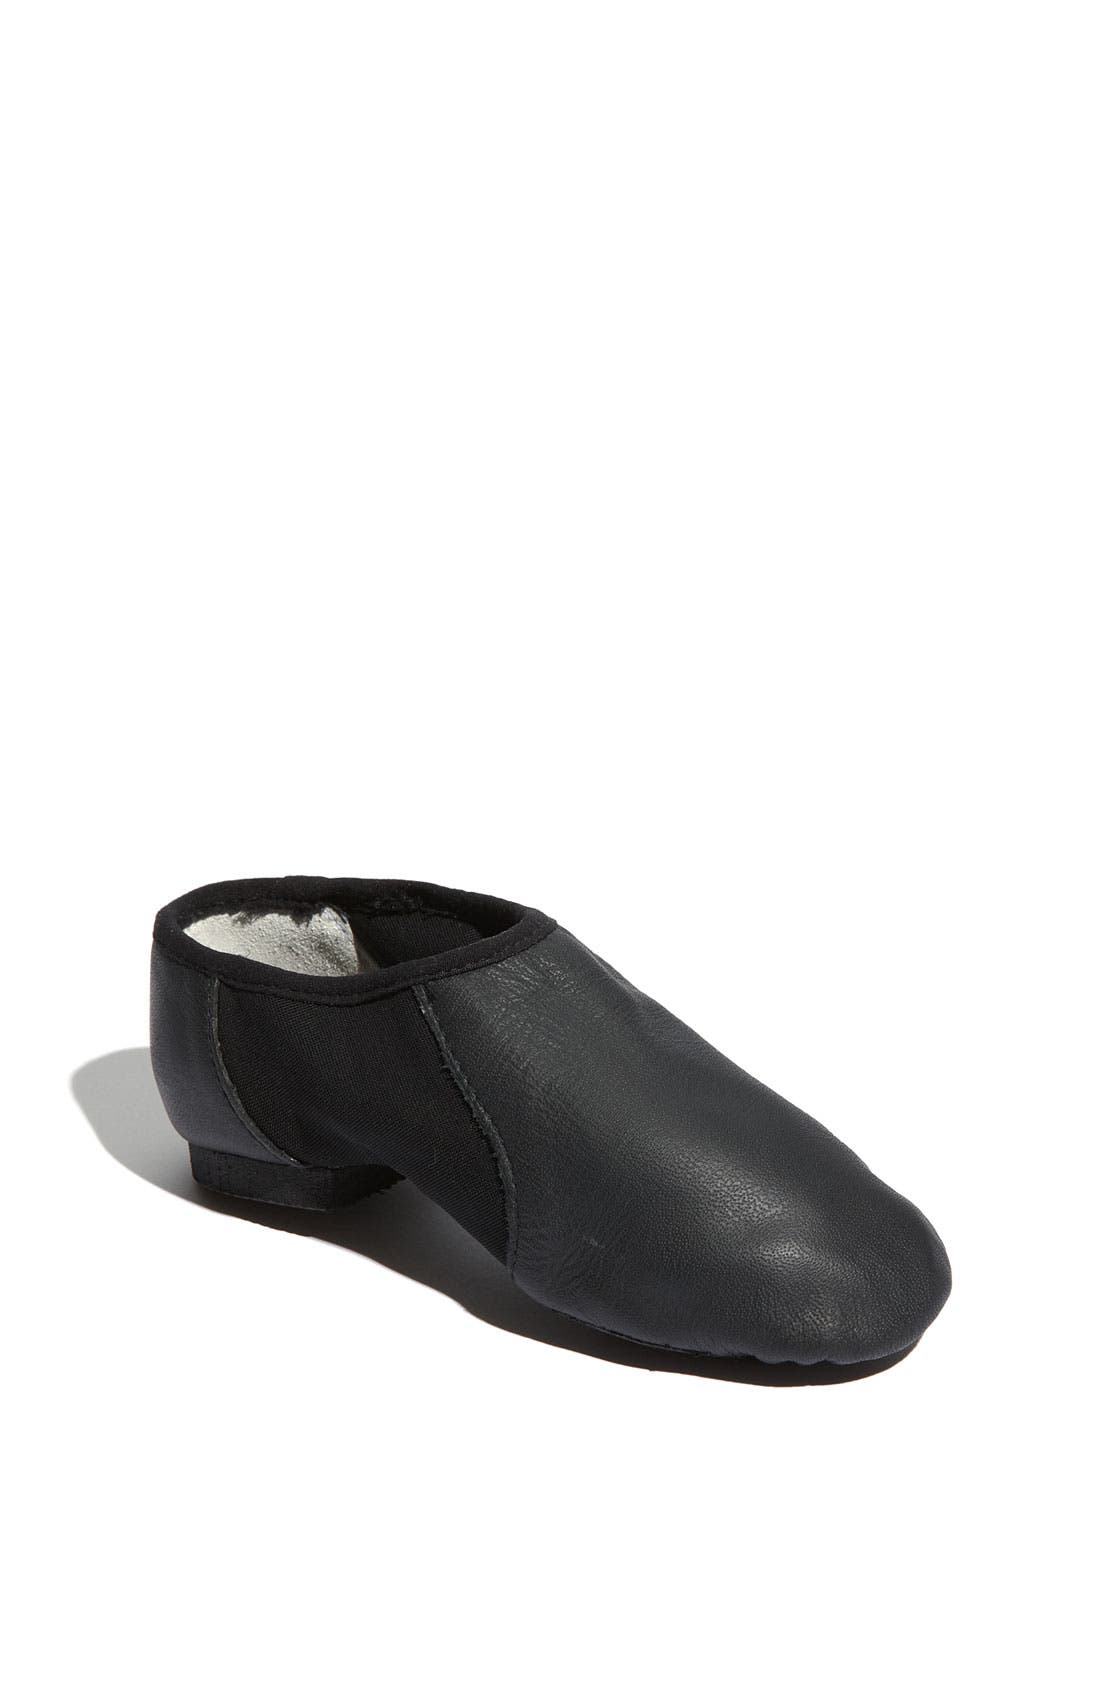 Main Image - Bloch 'Neo Flex' Jazz Shoe (Toddler & Little Kid)